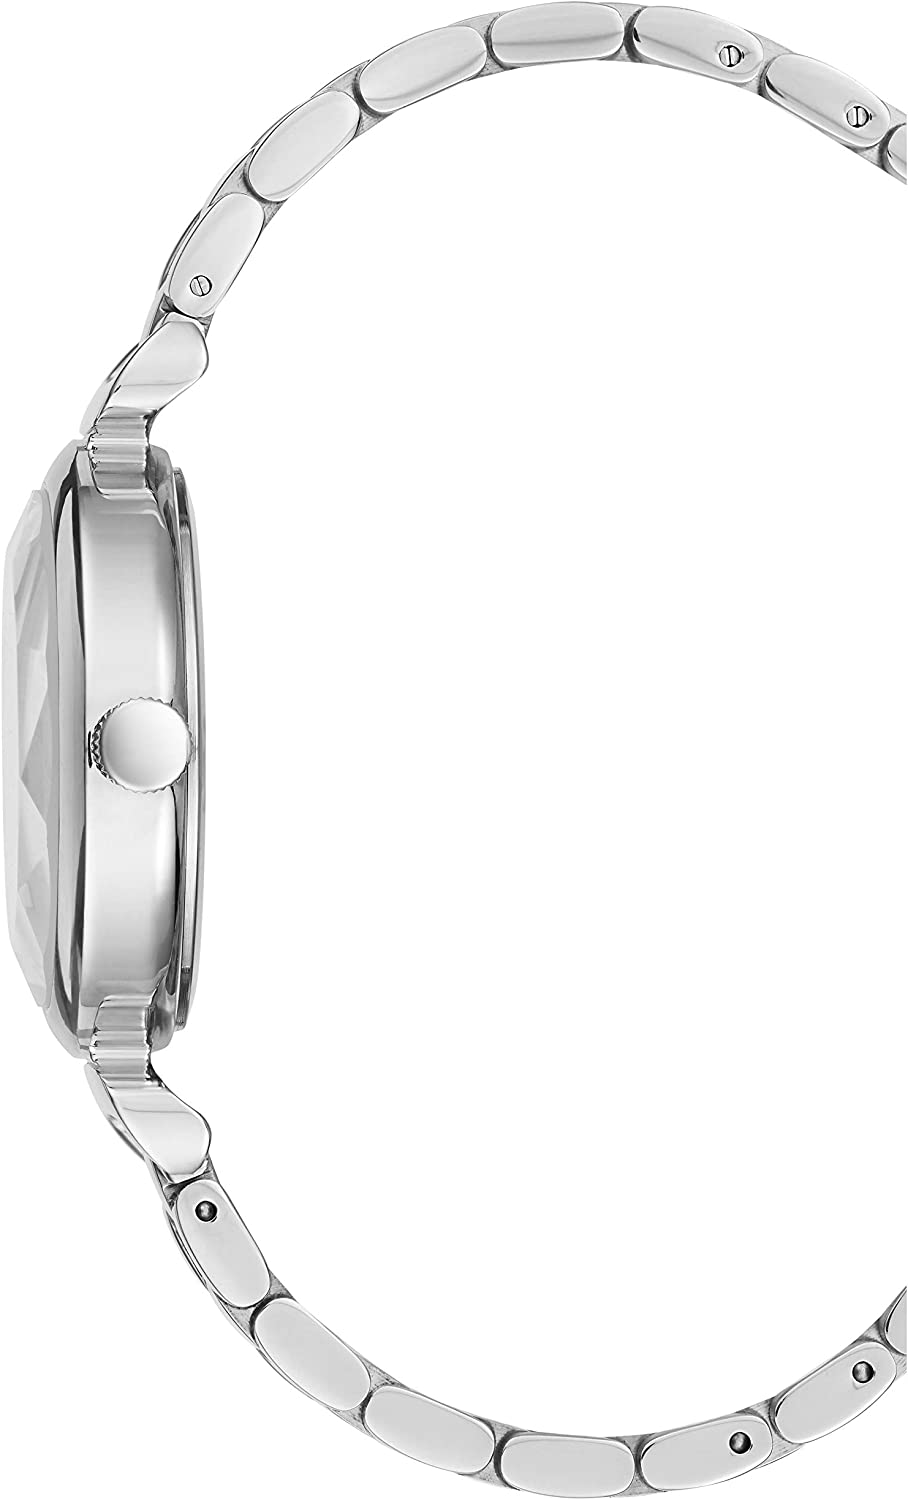 BCBGMAXAZRIA Women's Japanese-Quartz Stainless Steel Case Geniune Leather/Stainless Steel Strap Casual Watch (Model: BG5068200 Silver white